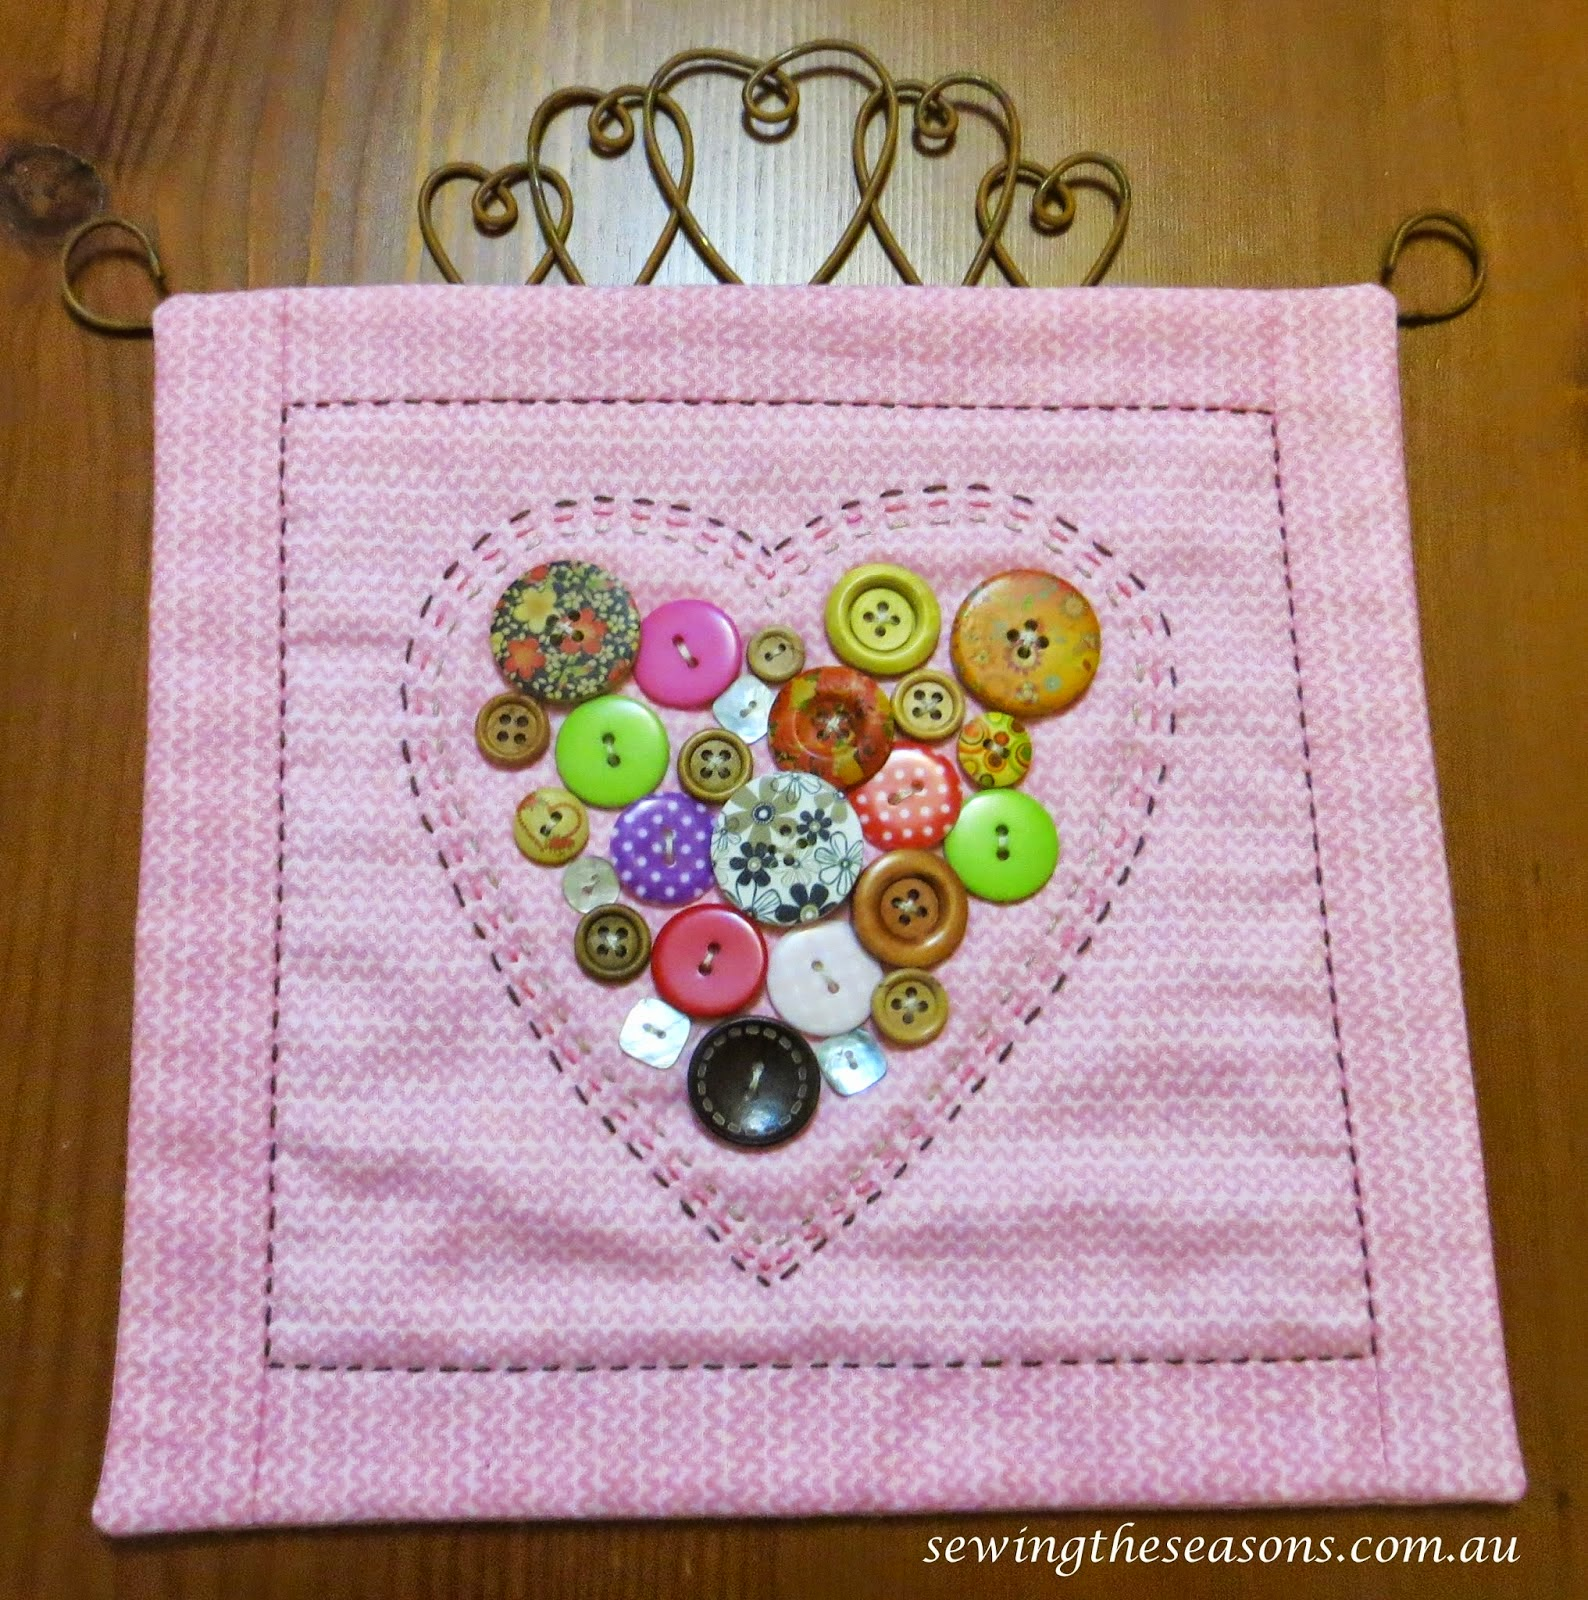 http://www.sewingtheseasons.com.au/2015/01/tutorial-button-heart-hangings.html